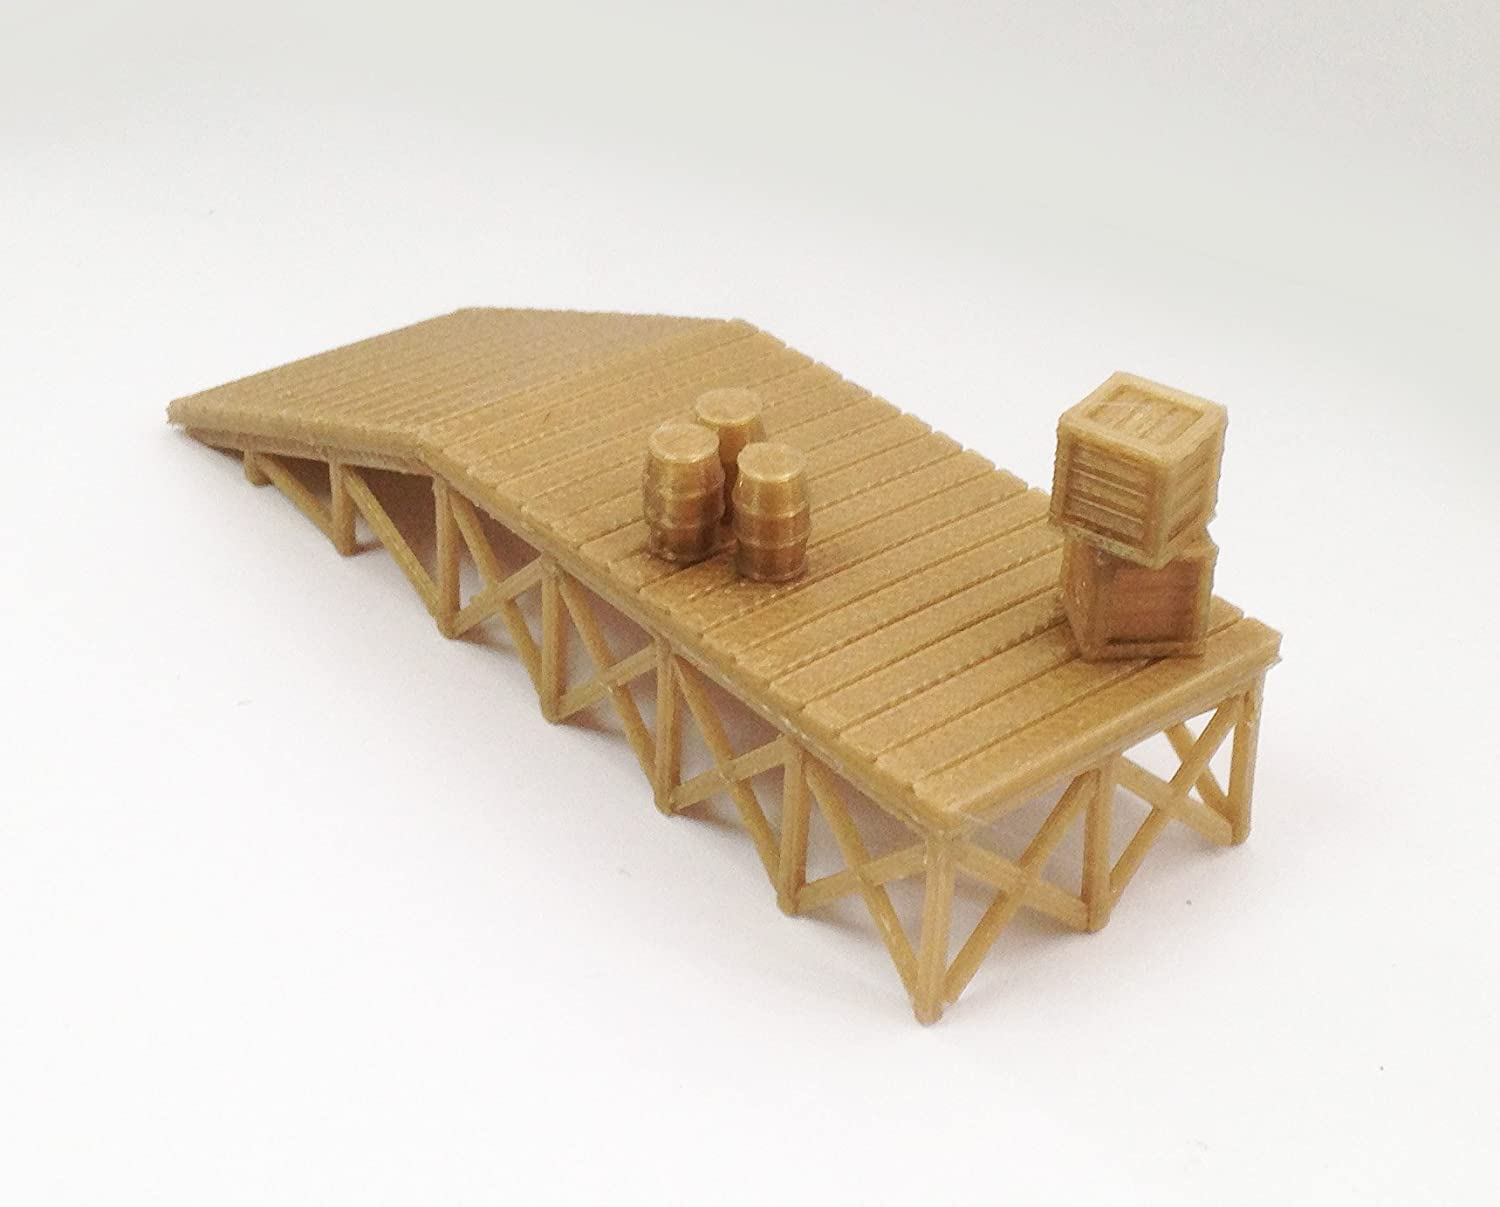 Outland Models Cash special price Train Railway Special price for a limited time Wooden Dock Style Platform Loading